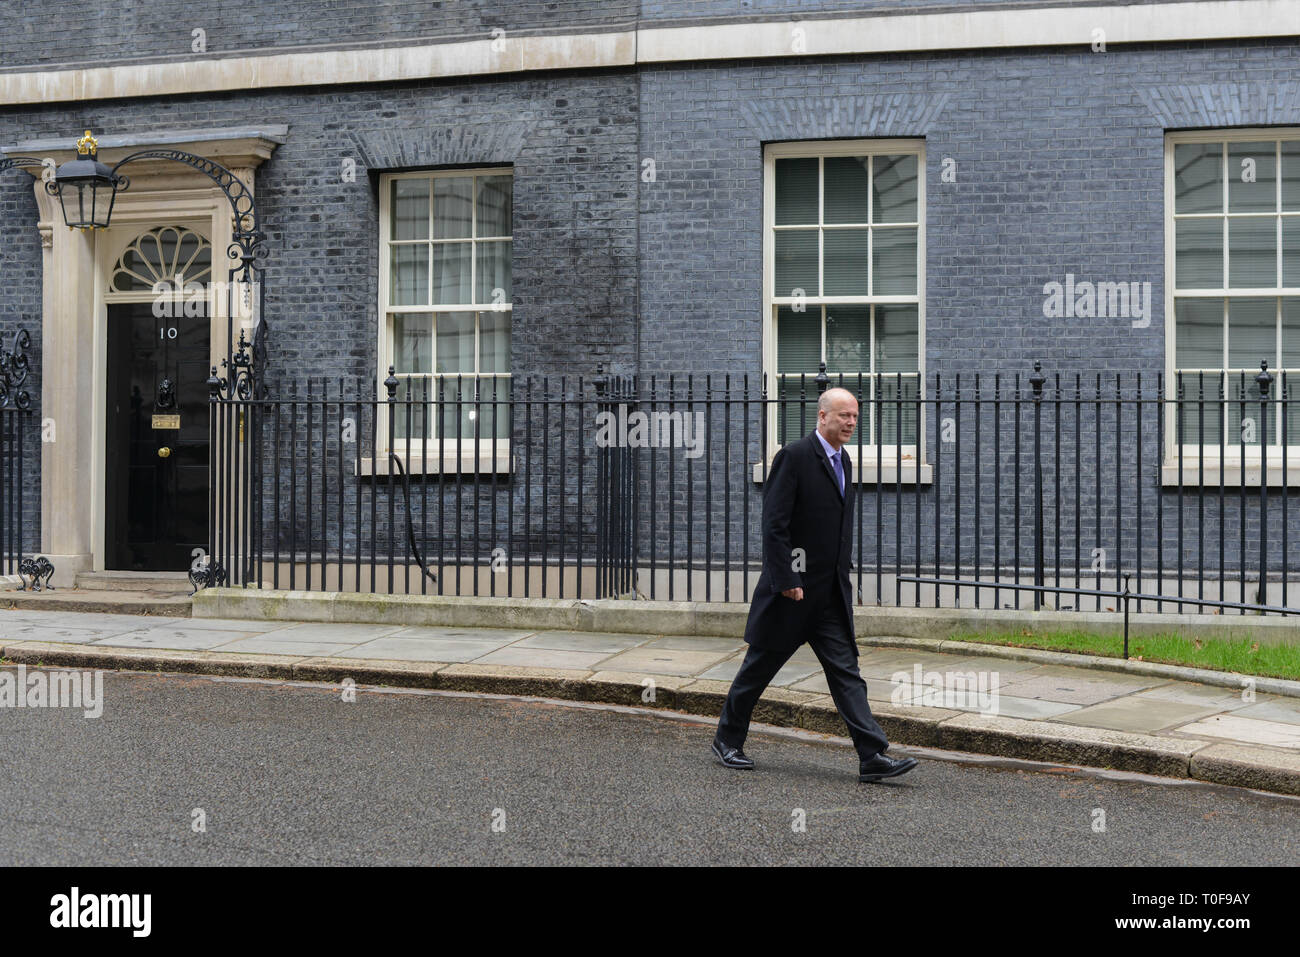 London, UK. 19th March, 2019. Chris Grayling MP, Secretary of State for Transport, leaves 10 Downing Street following the Cabinet Meeting, on the day Prime Minister Theresa May will decide what her next steps will be after her Brexit plans were dealt a significant blow by the Commons Speaker. Credit: Thomas Krych/Alamy Live News - Stock Image